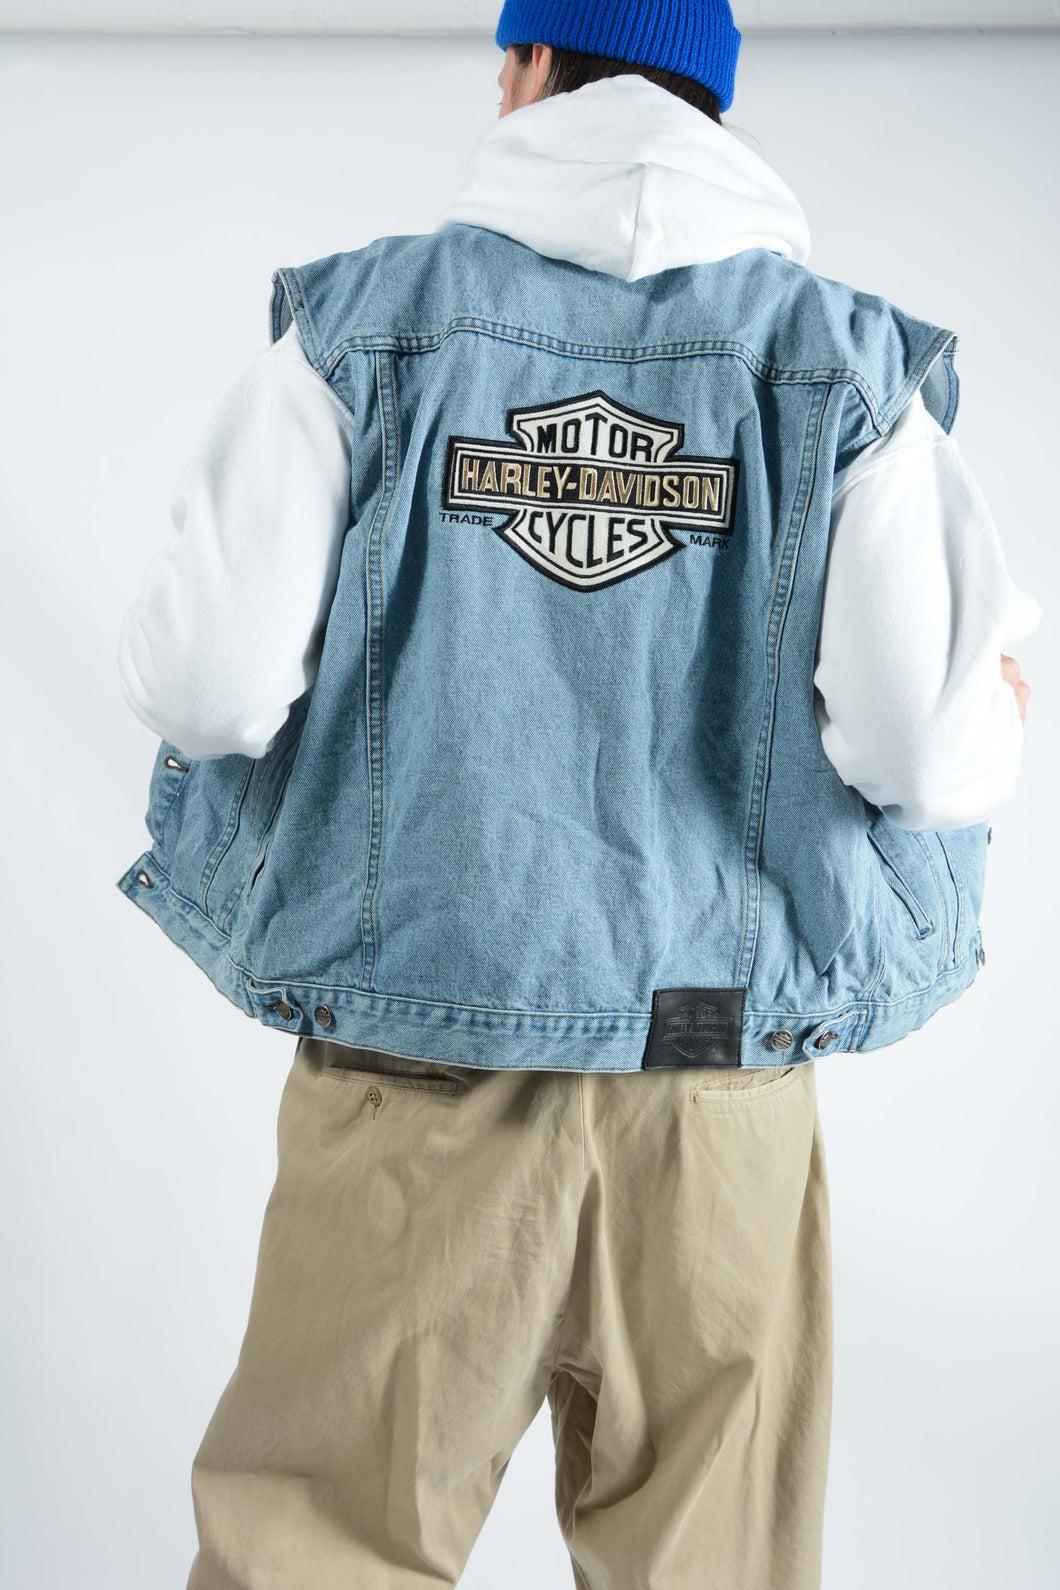 Vintage Harley Davidson Sleeveless Denim Jacket - L